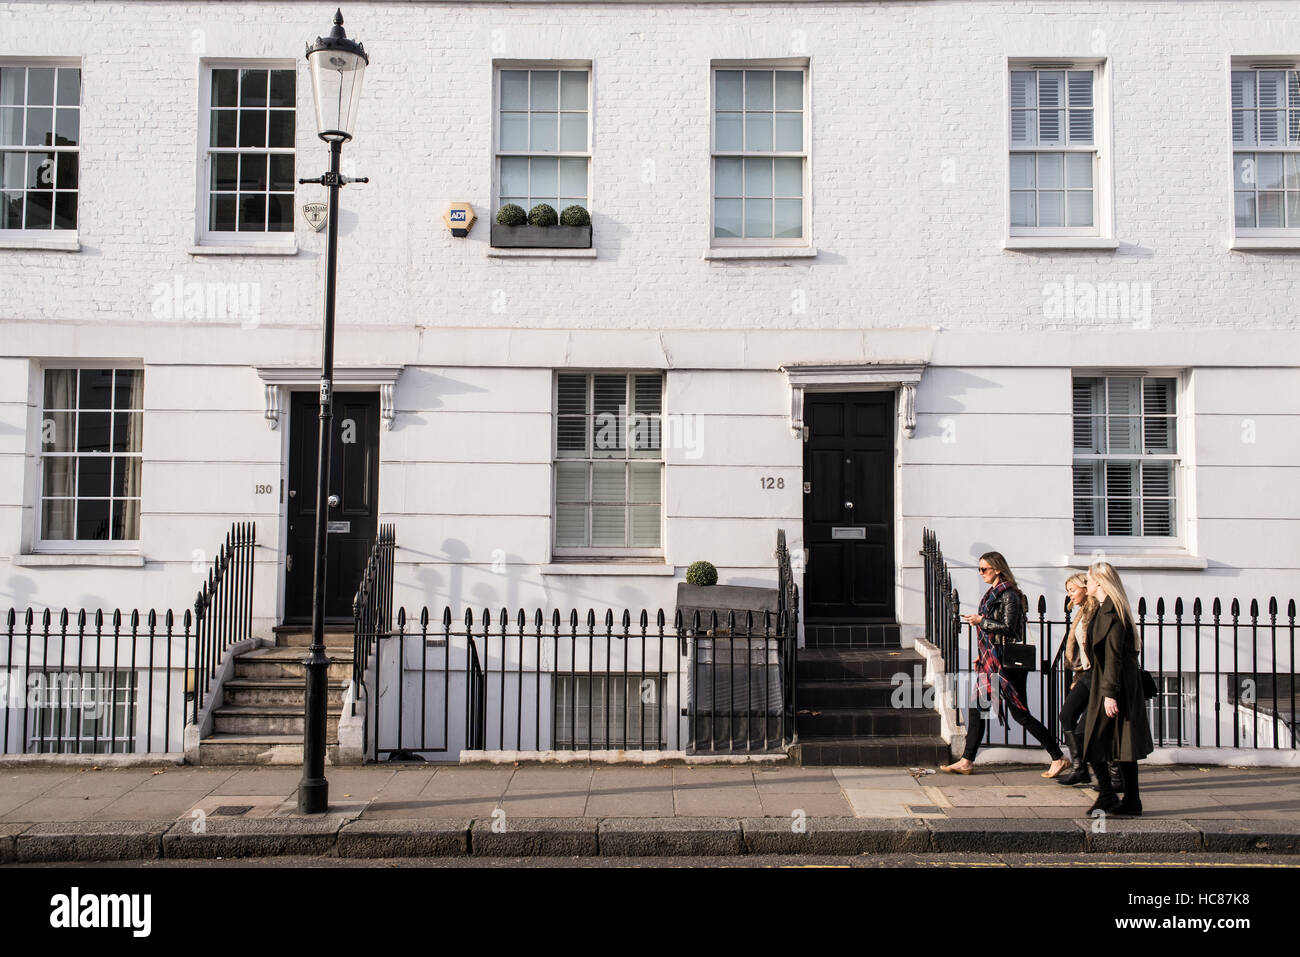 Three young women walking in a posh residential area of Chelsea, London, UK. Chelsea is an affluent area in southwest - Stock Image